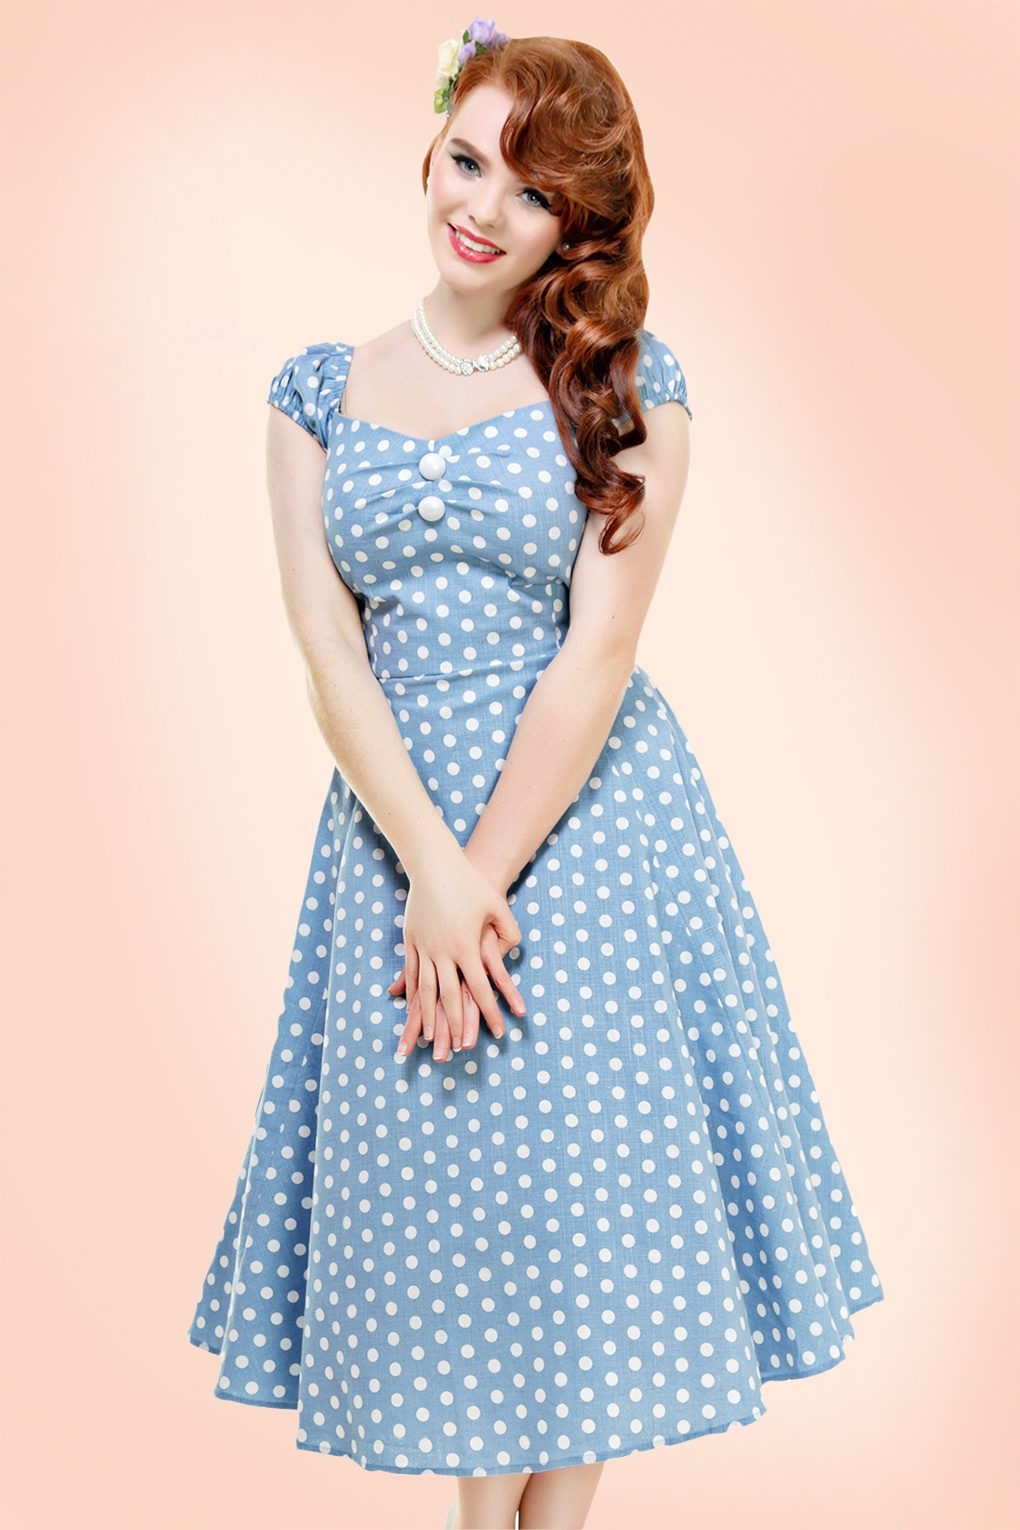 1950s Polka Dot Dresses 50s Dolores Polkadot Doll Swing Dress in Dusky Blue and White £60.09 AT vintagedancer.com